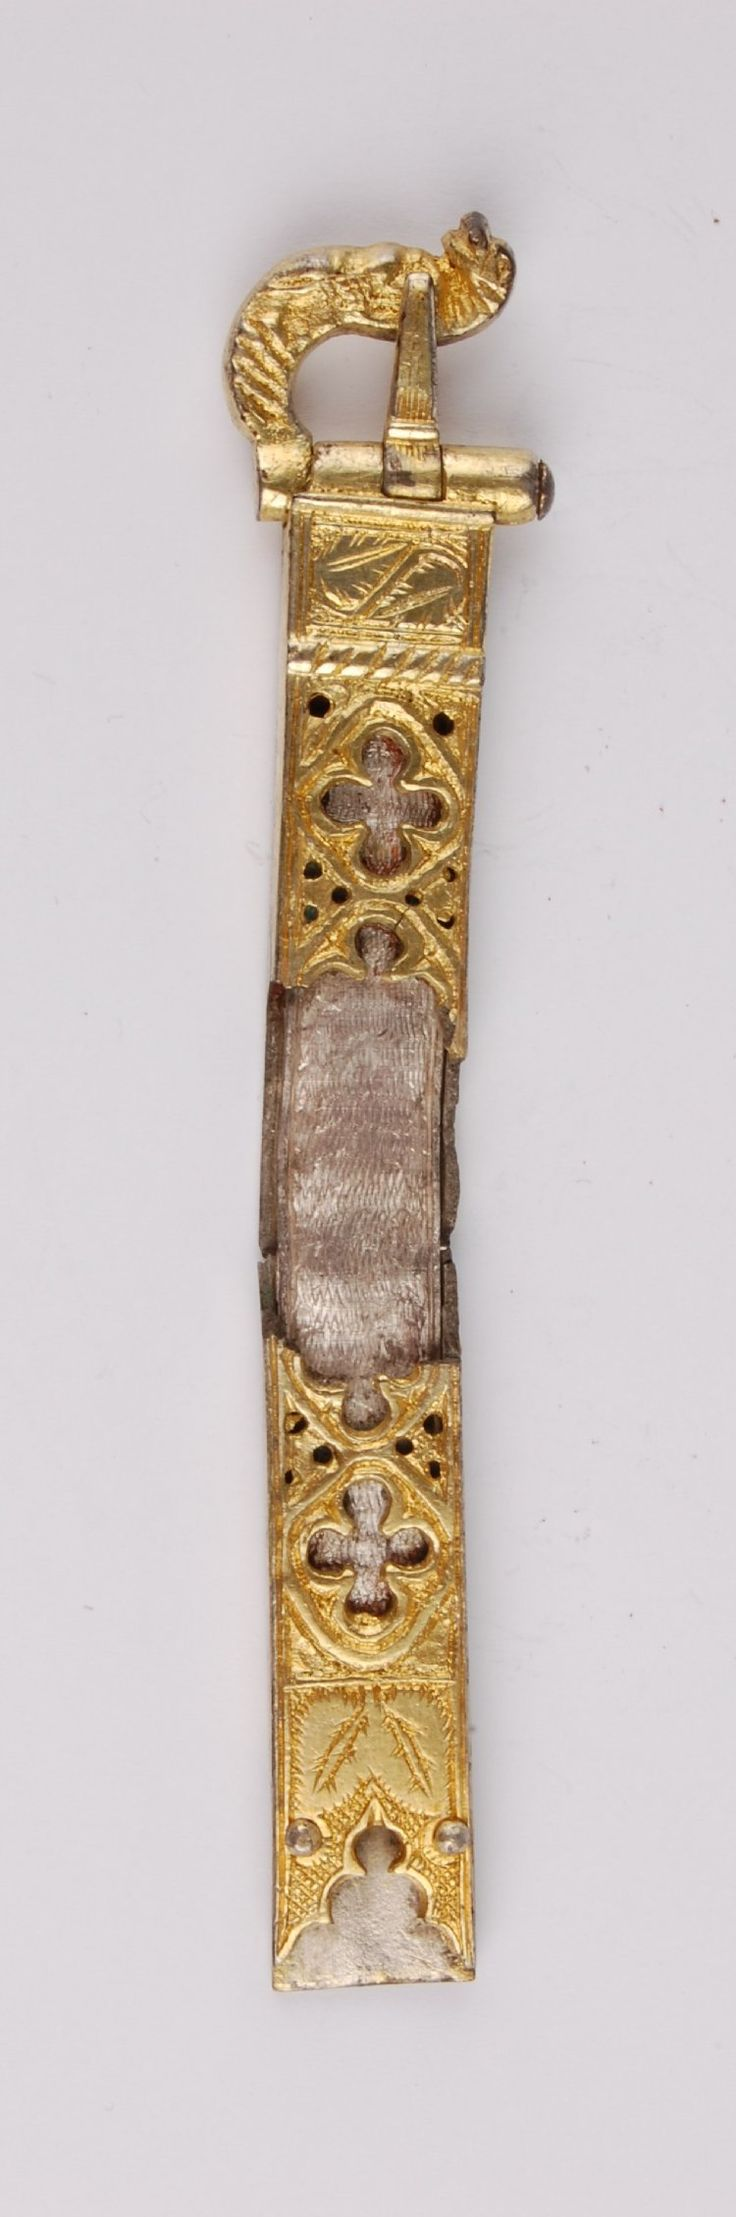 14th - 15th cent Greece, Buckle with plate; silver; the plate engraved with leaves and openwork quatrefoils which reveal a silver strip beneath; one end forms a buckle with a zoomorphic tongue; at the other end two rivets.